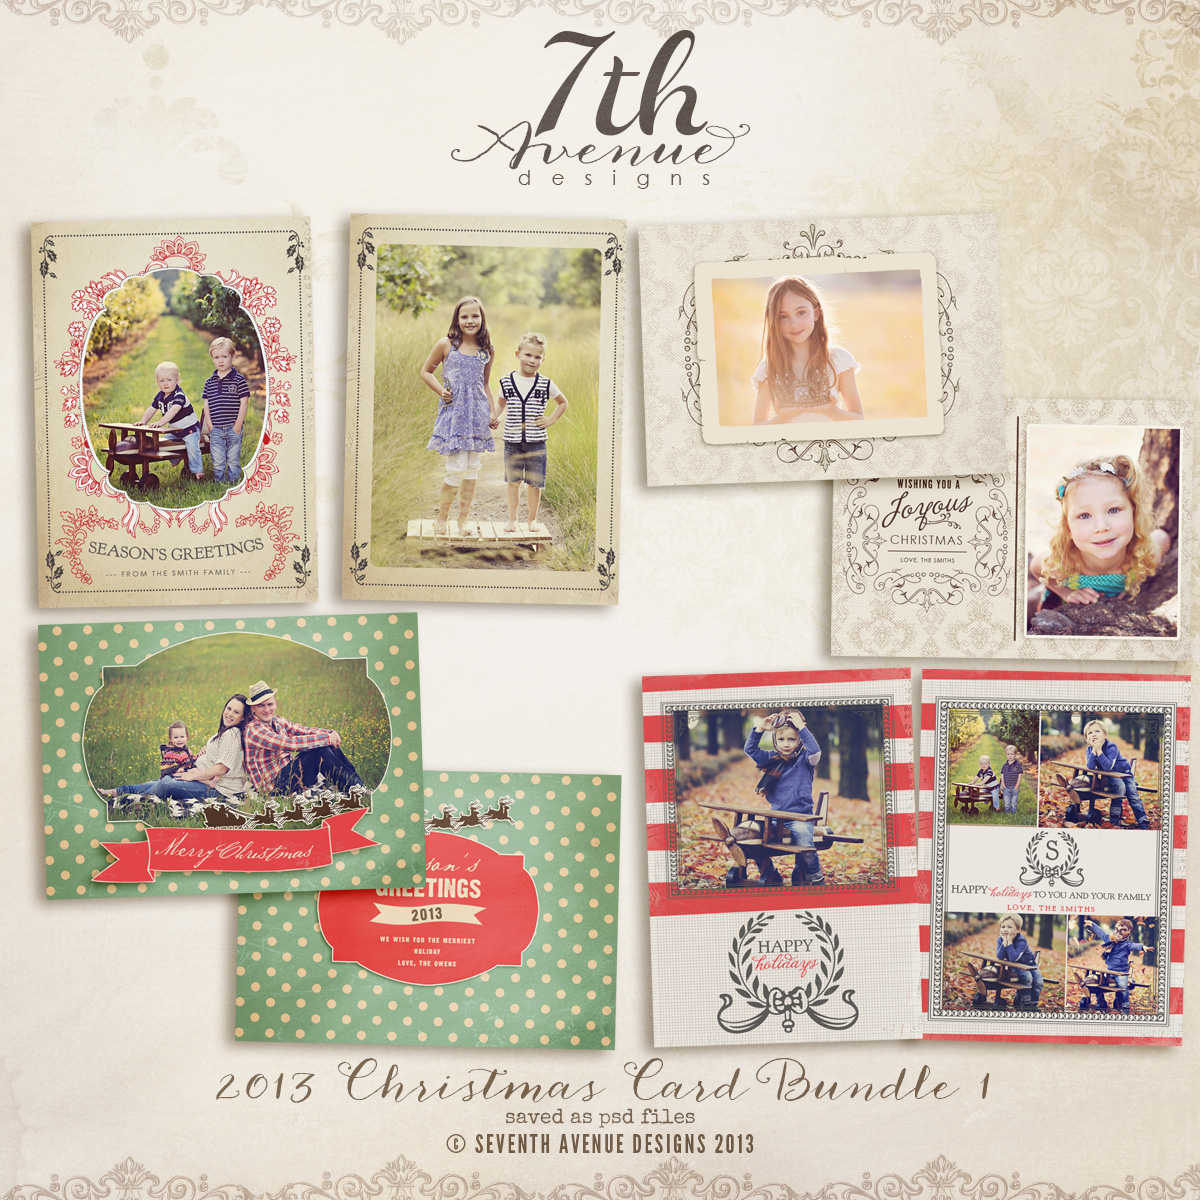 2013 Christmas Card Templates Bundle 1